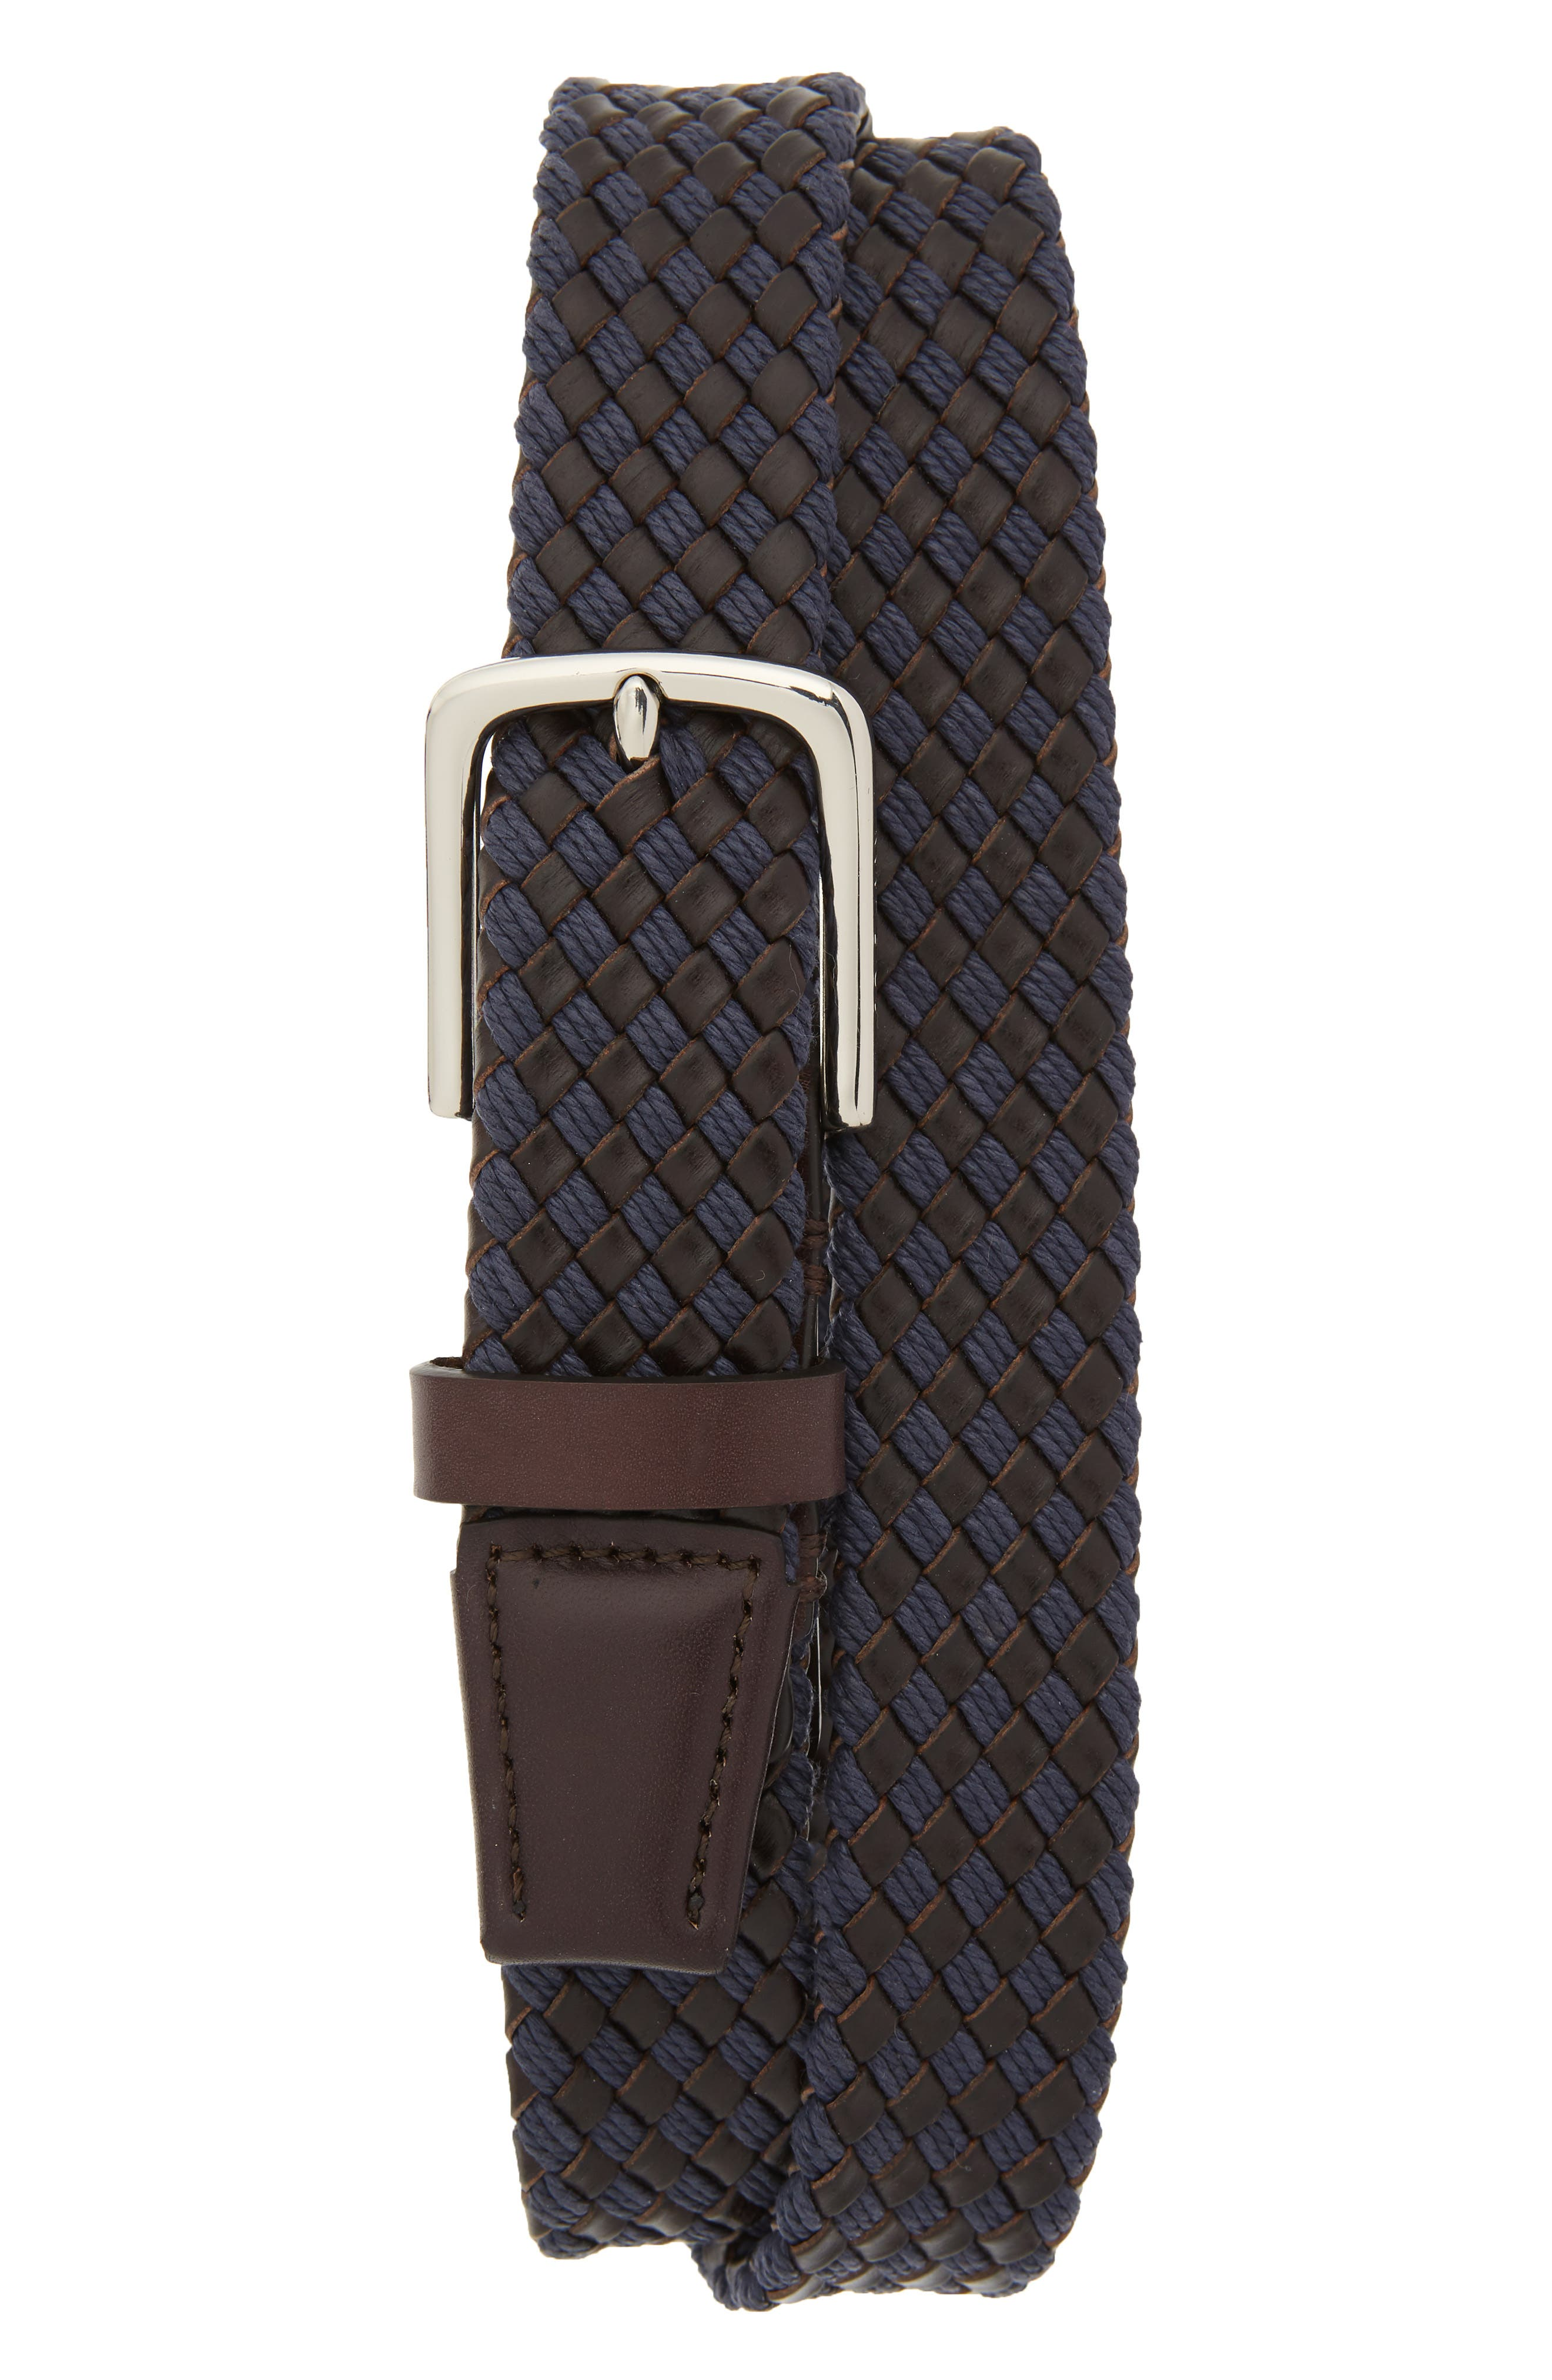 Cole Haan Braided Leather & Jute Belt, Navy/ Polished Nickel